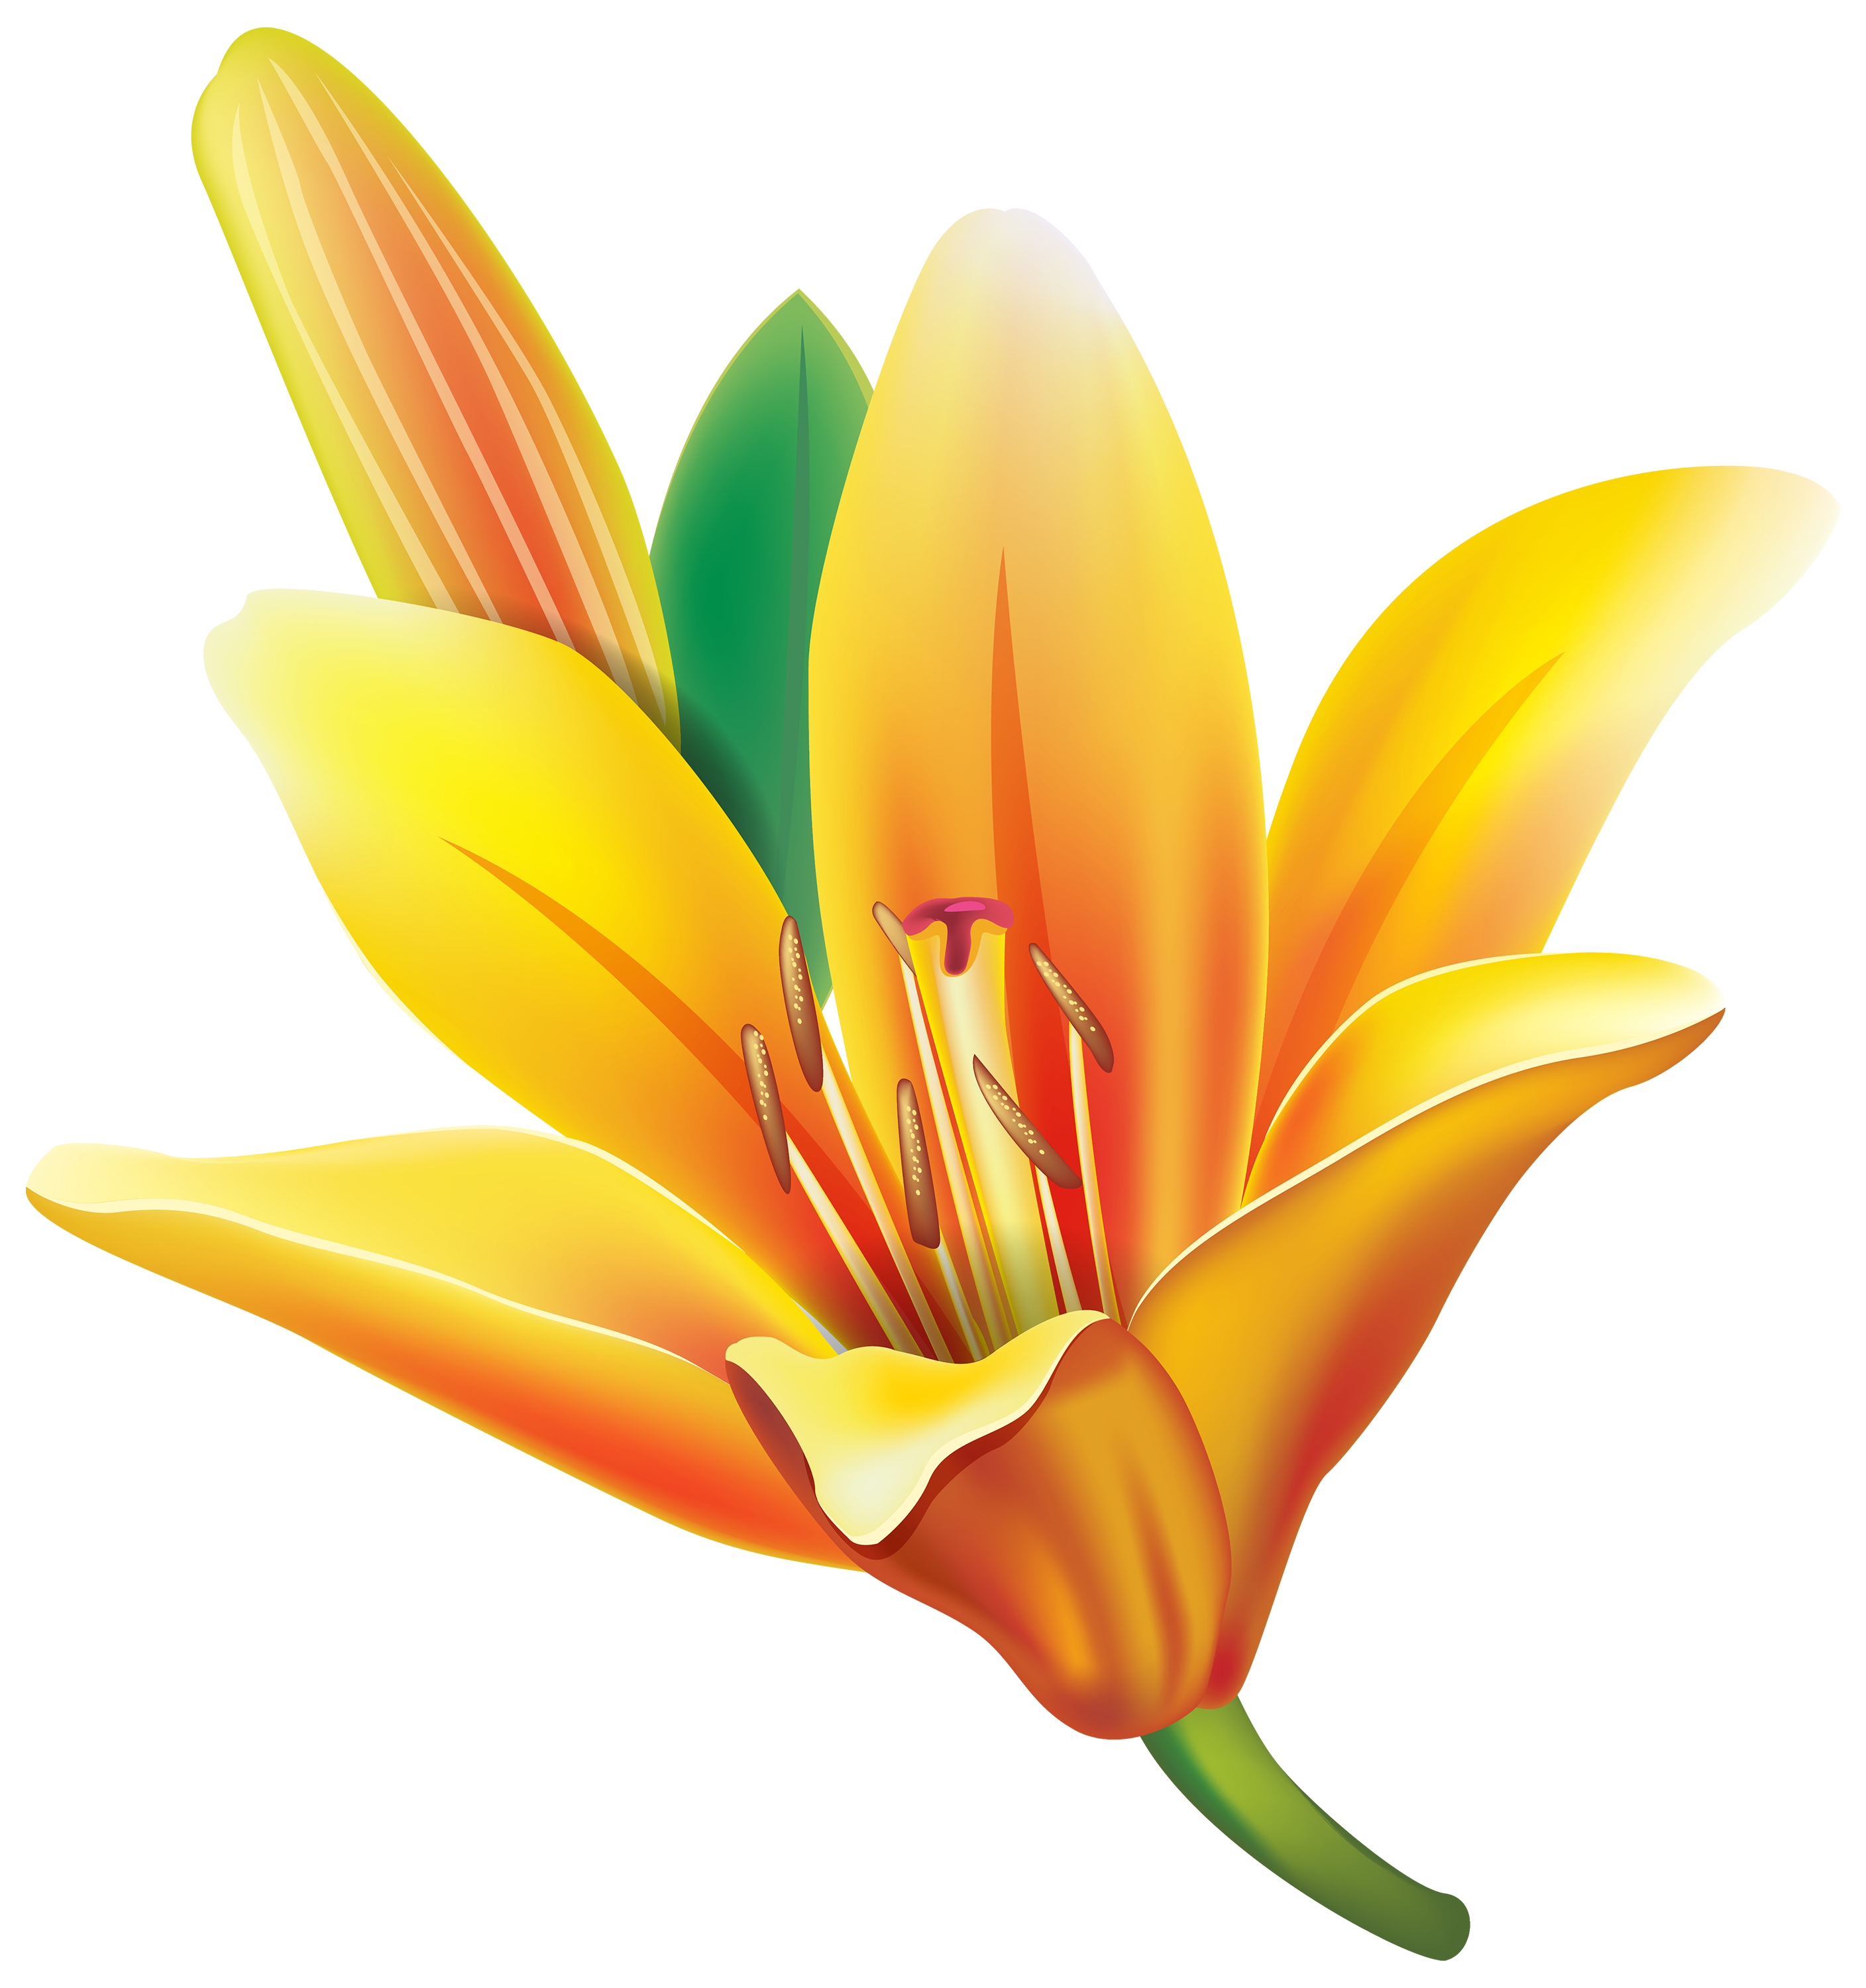 Yellow Lily Flower PNG Clipart CLIP ART FLOWERS TWO